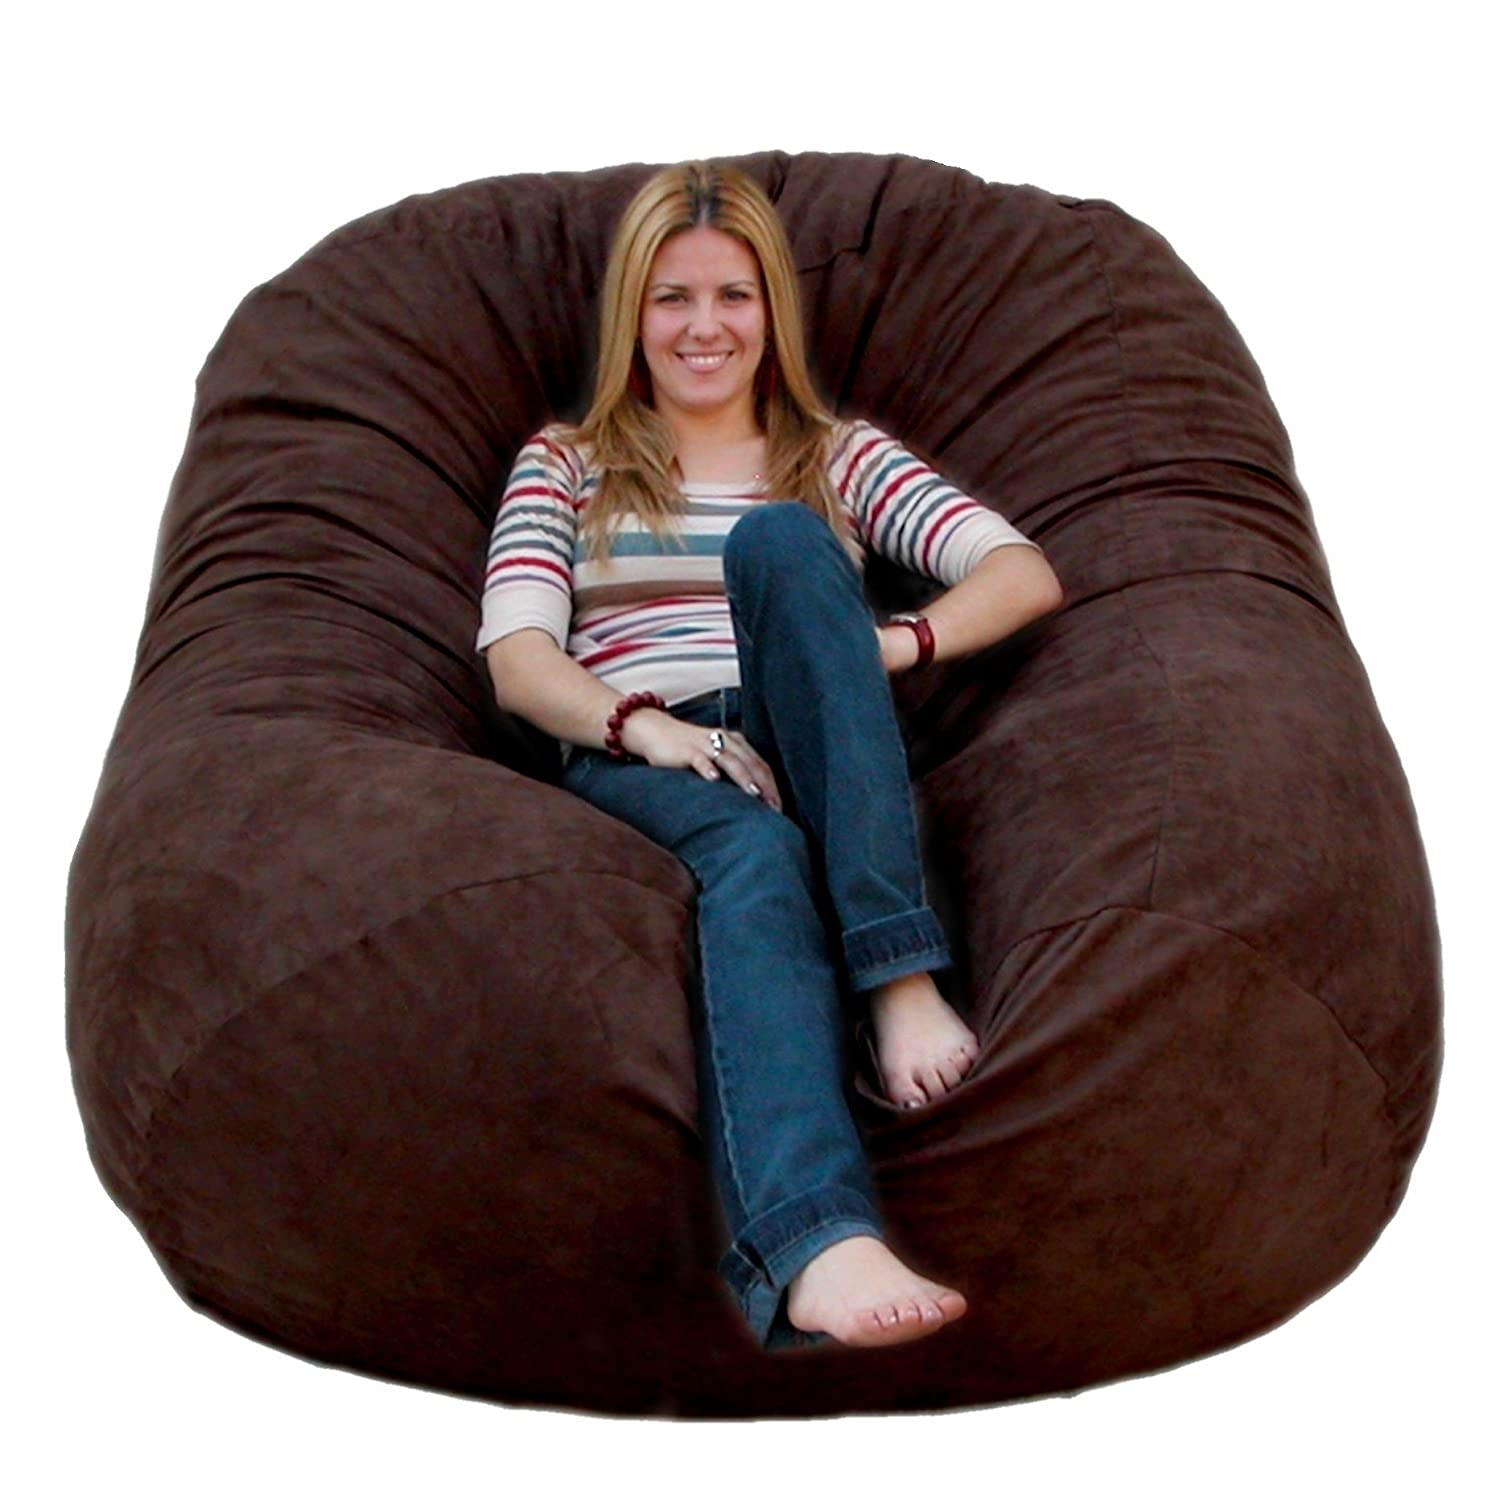 Amazoncom Cozy Sack 6Feet Bean Bag Chair Large Chocolate